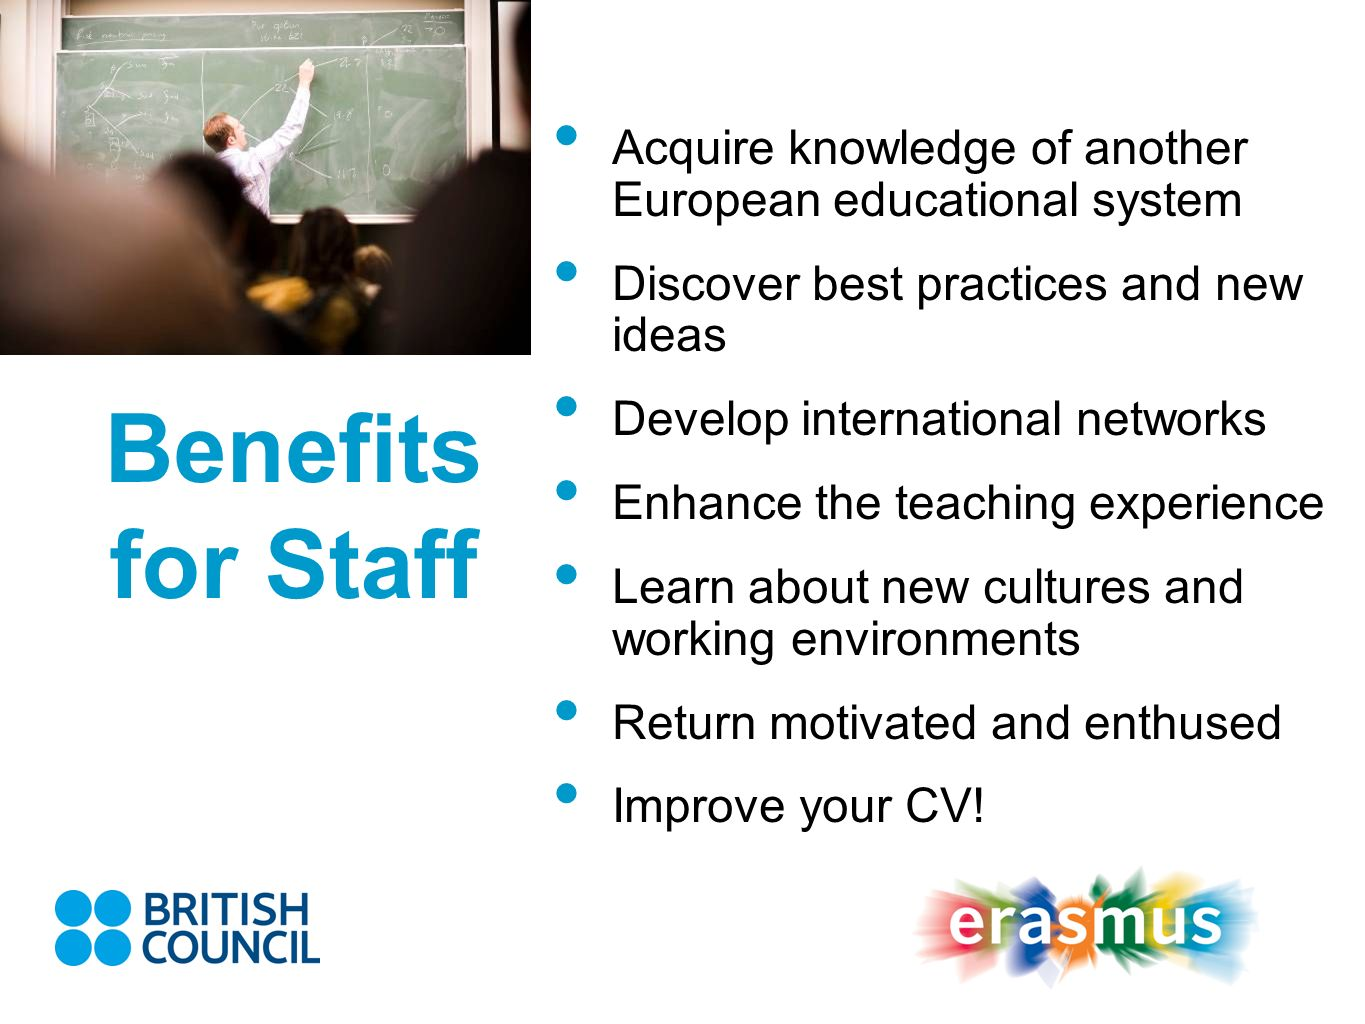 Acquire knowledge of another European educational system